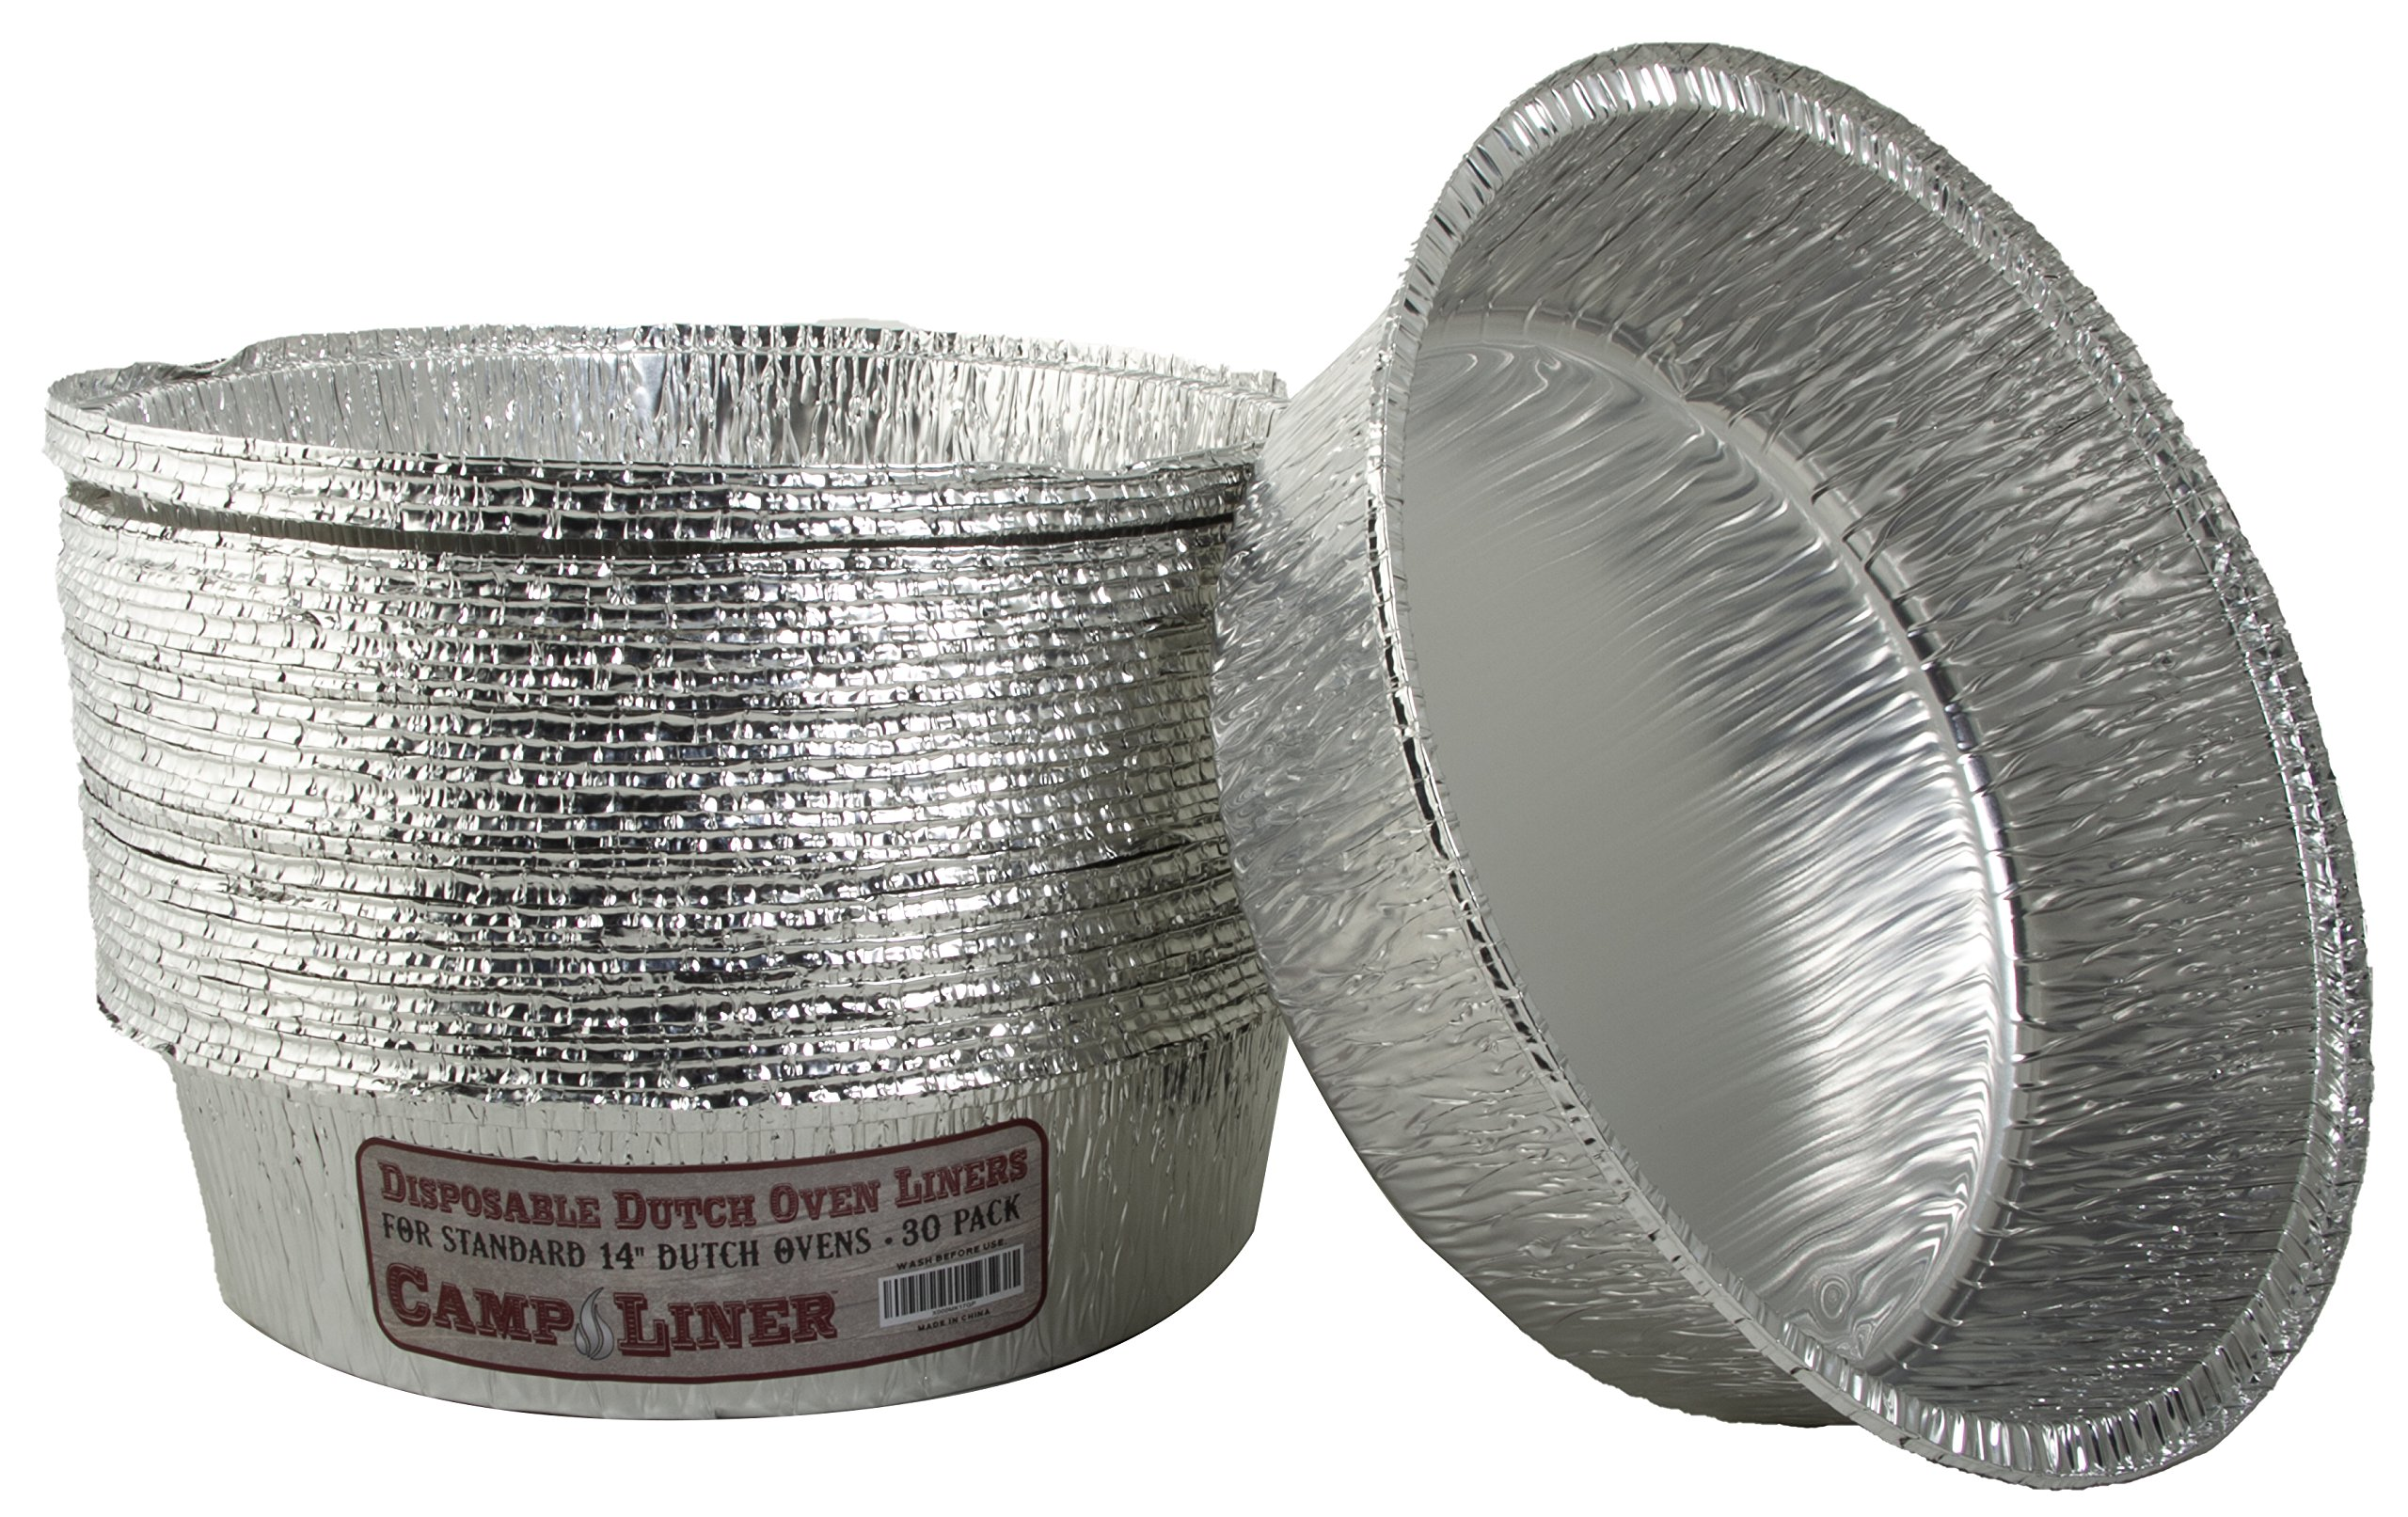 Campliner Dutch Oven Liners, 30 Pack of 14-Inch 8 Quart Disposable Liners - No More Cleaning or Seasoning. Fits Lodge, Camp Chef, and other Cast Iron Dutch Ovens by CAMP LINER (Image #1)